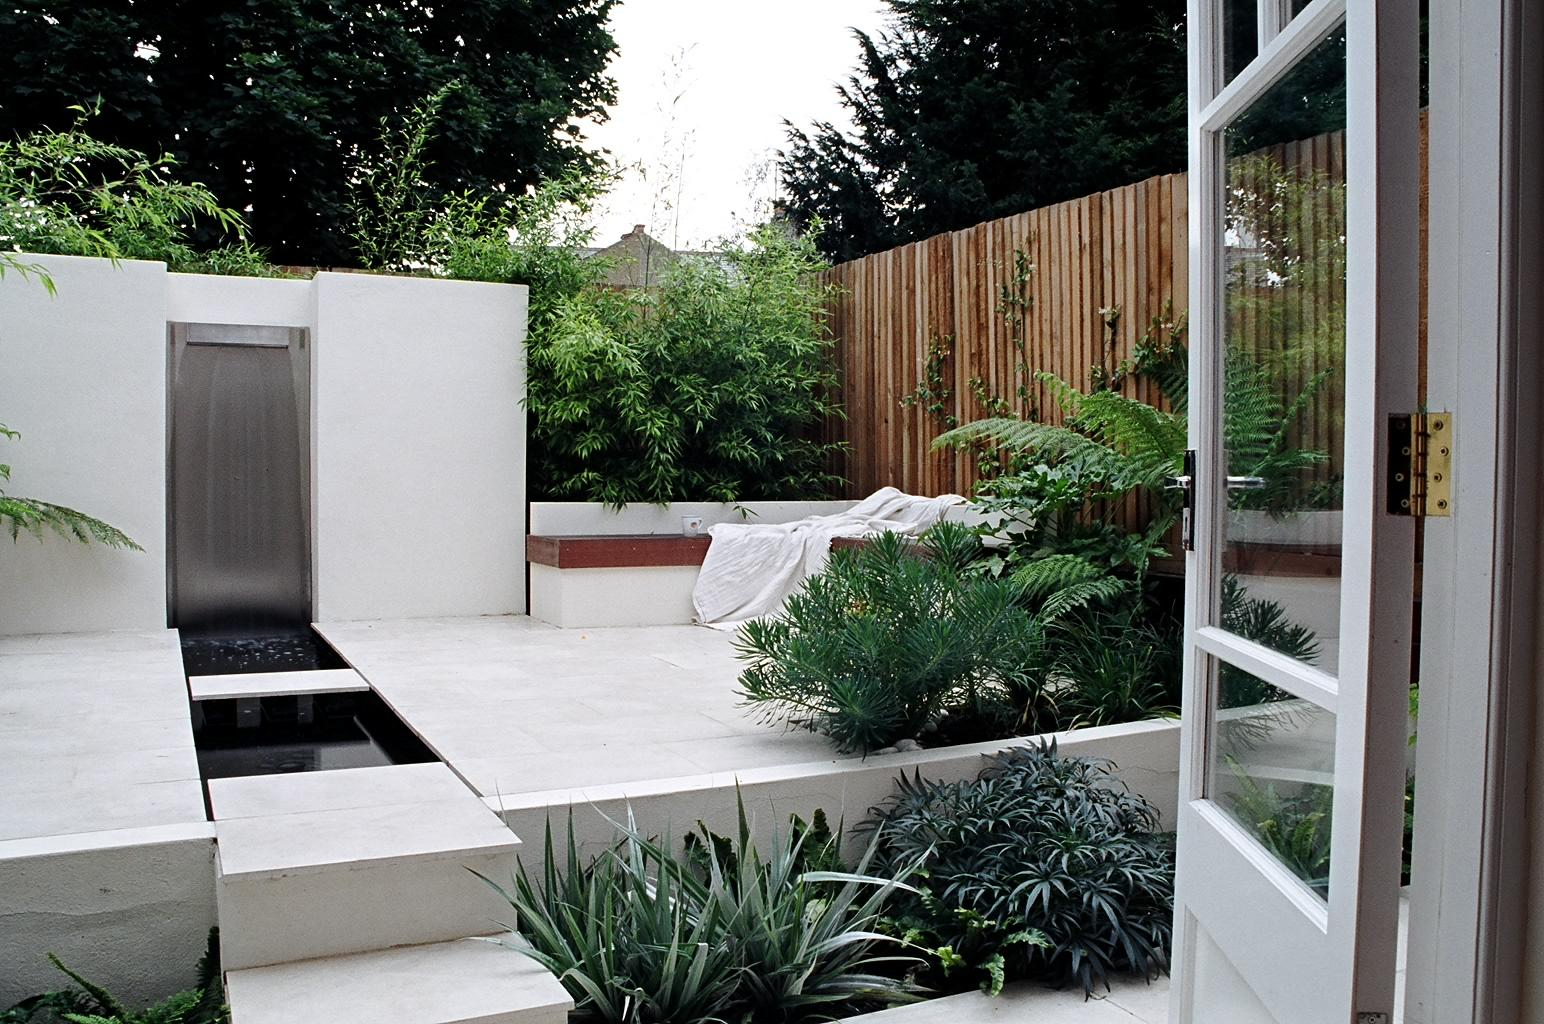 Small urban garden design garden design st albans for Garden designs for small gardens uk